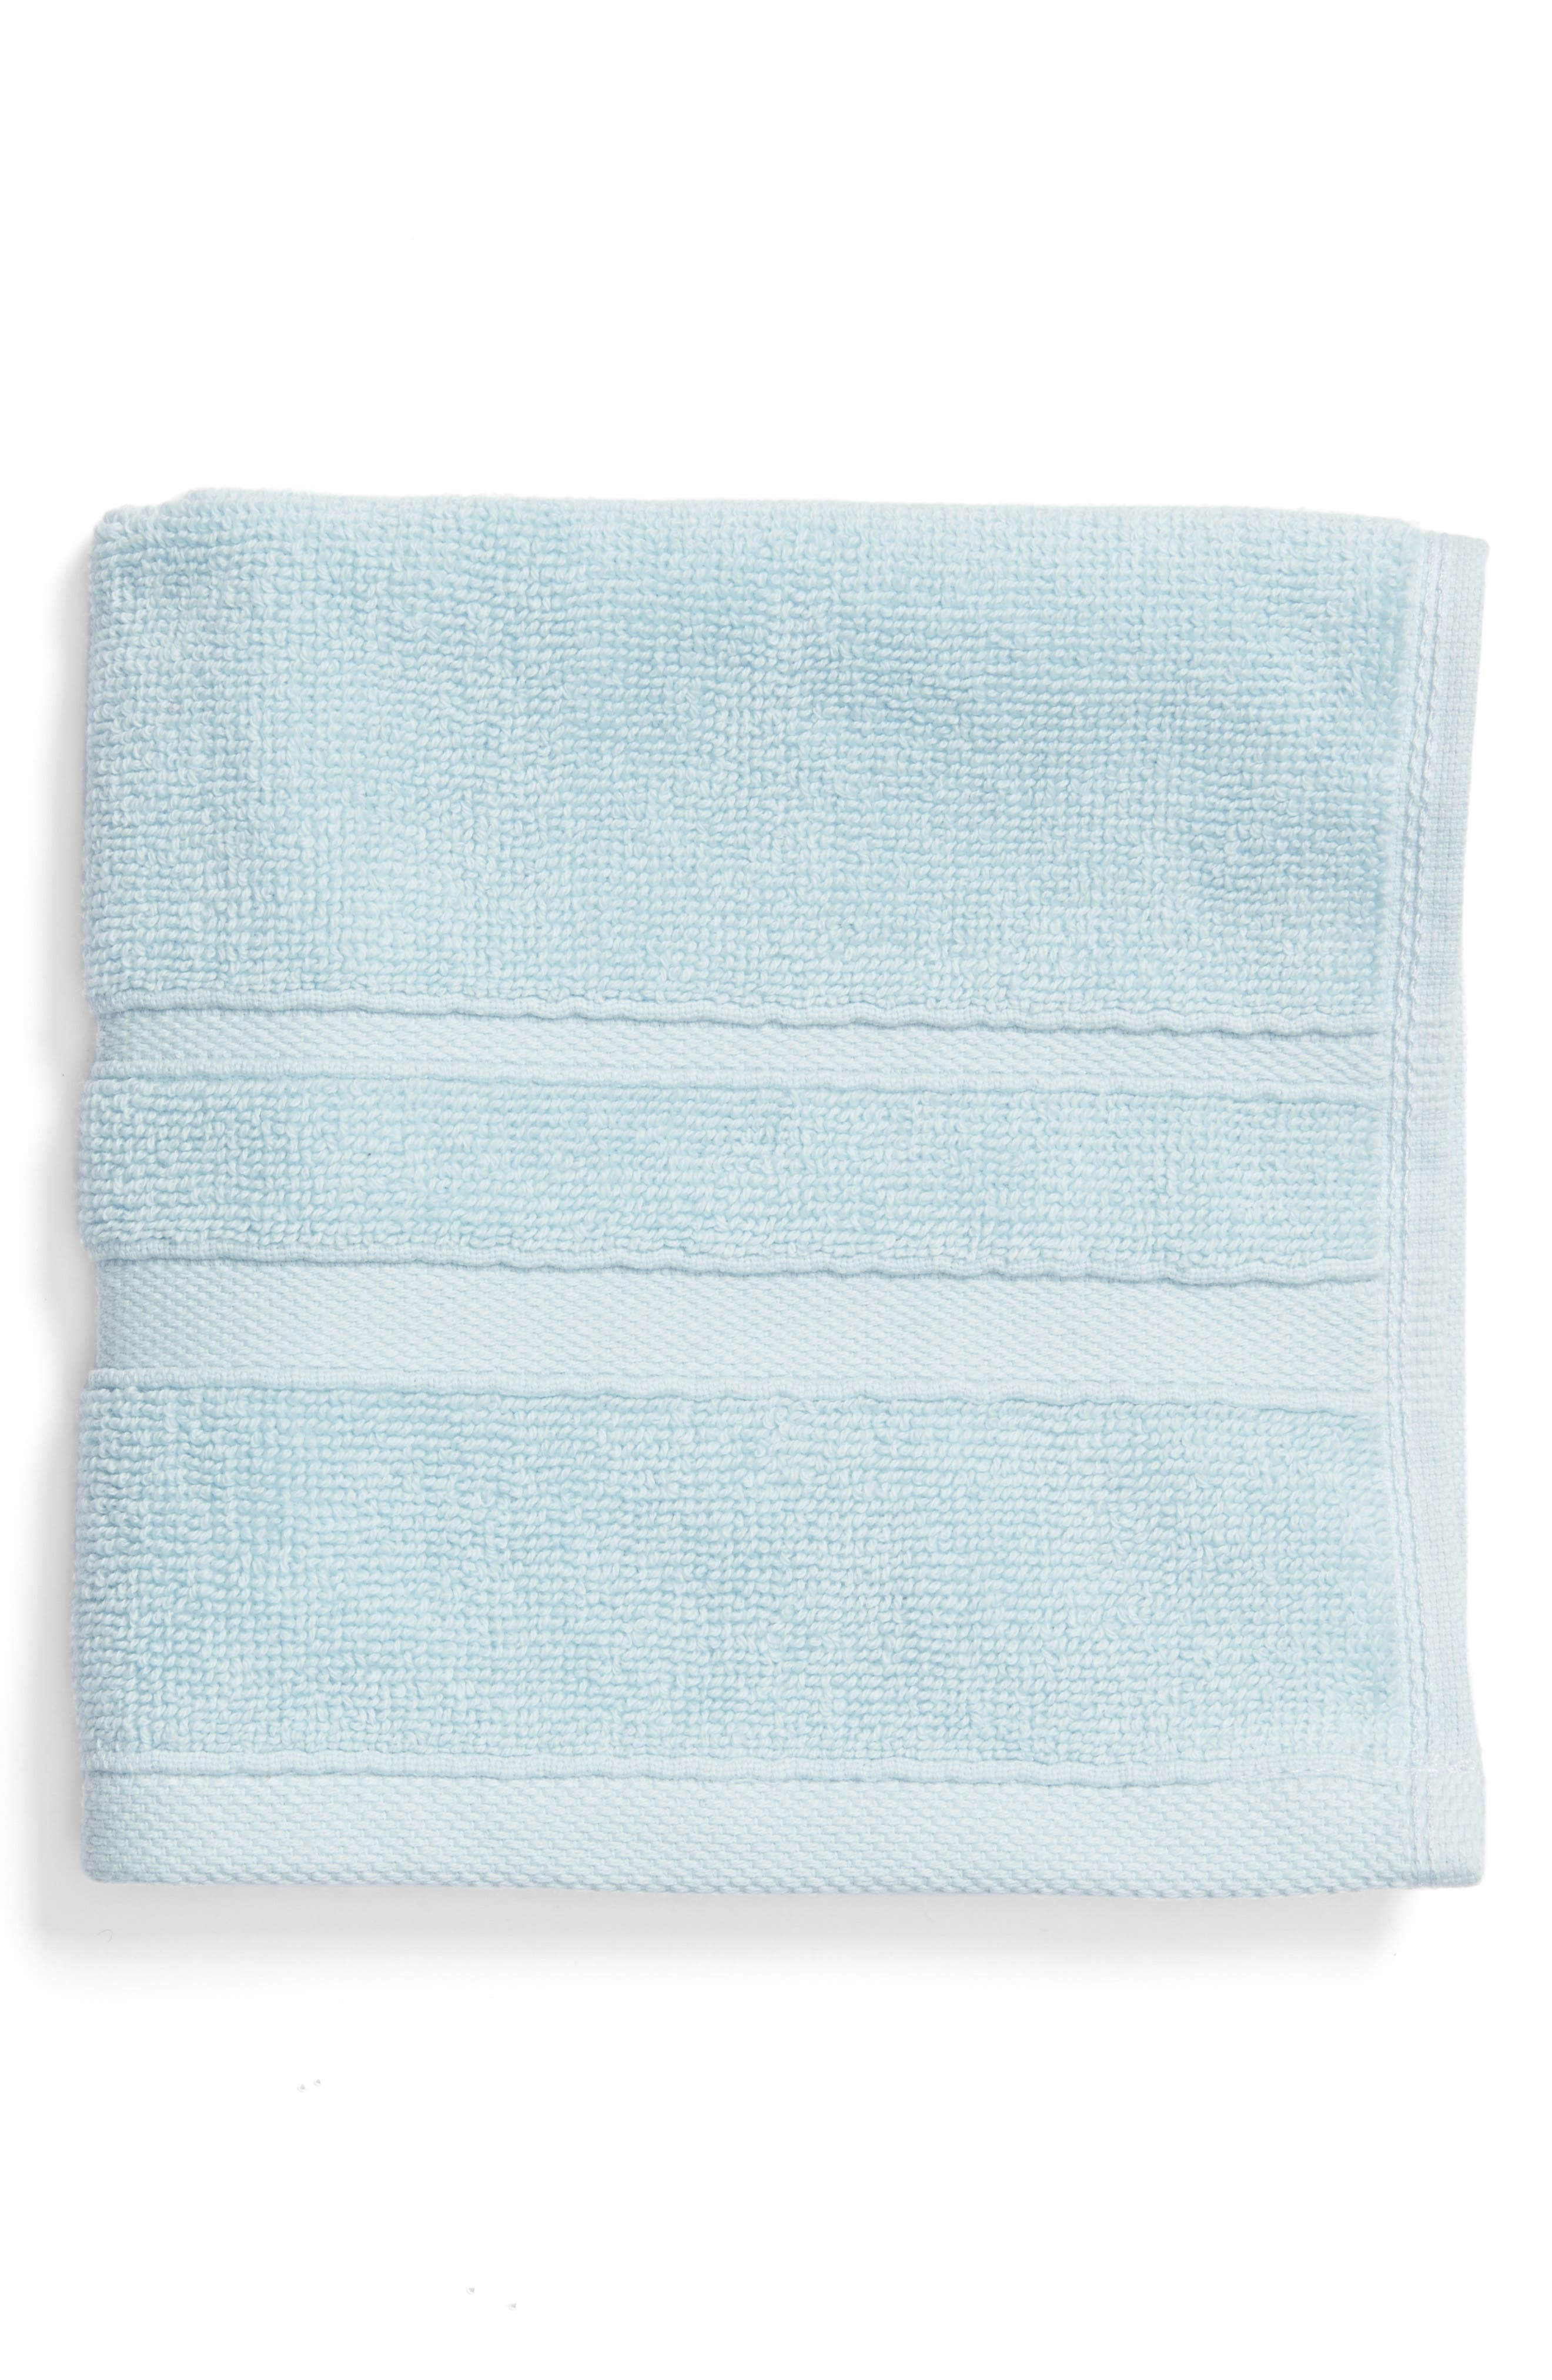 Main Image - Waterworks Studio 'Perennial' Combed Turkish Cotton Washcloth (Online Only)